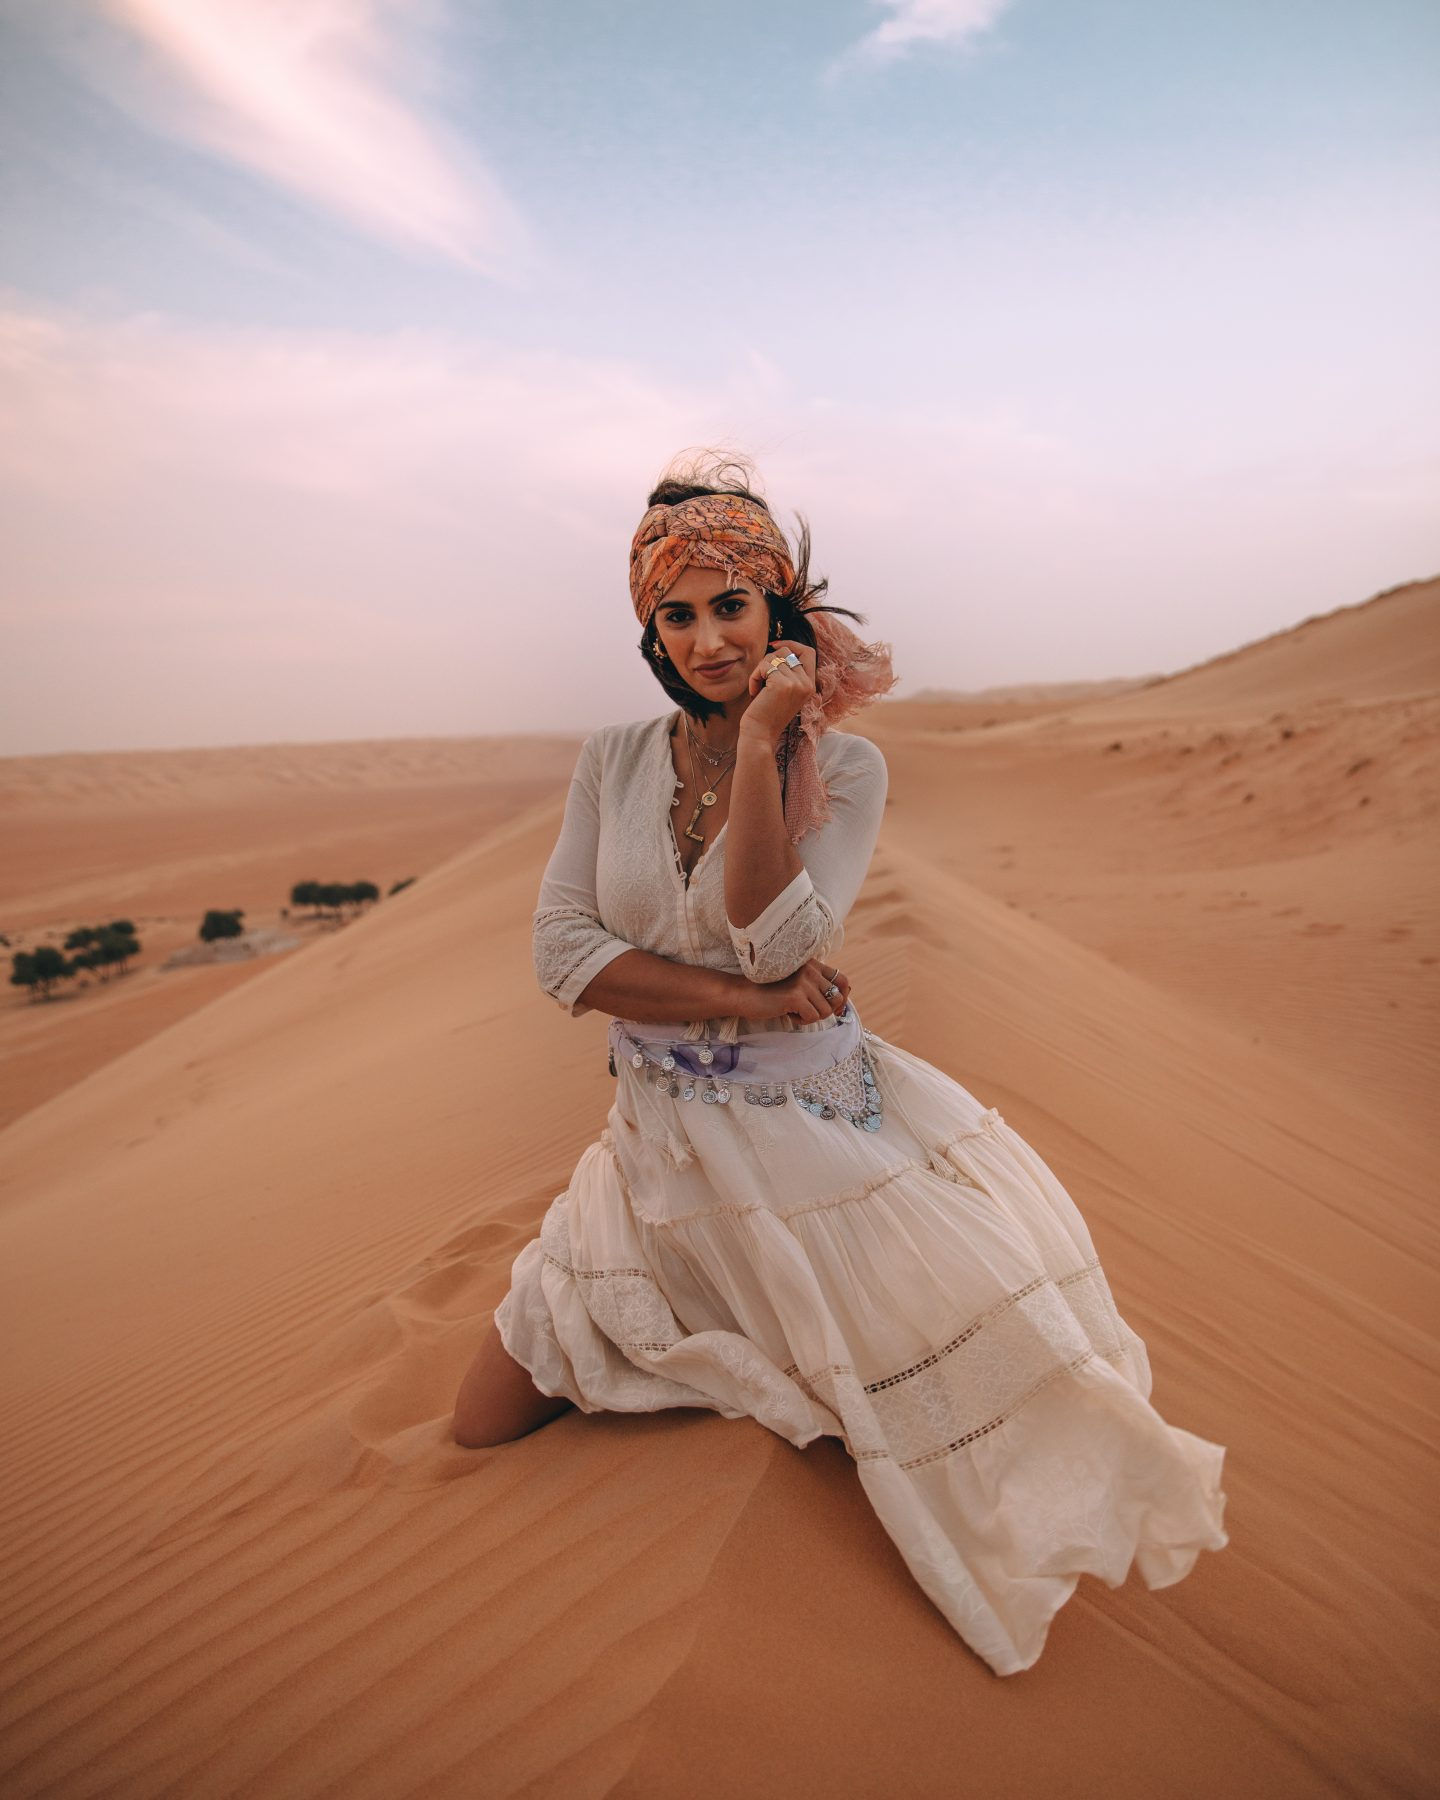 A woman posing in the desert in Oman - Wahiba Sands